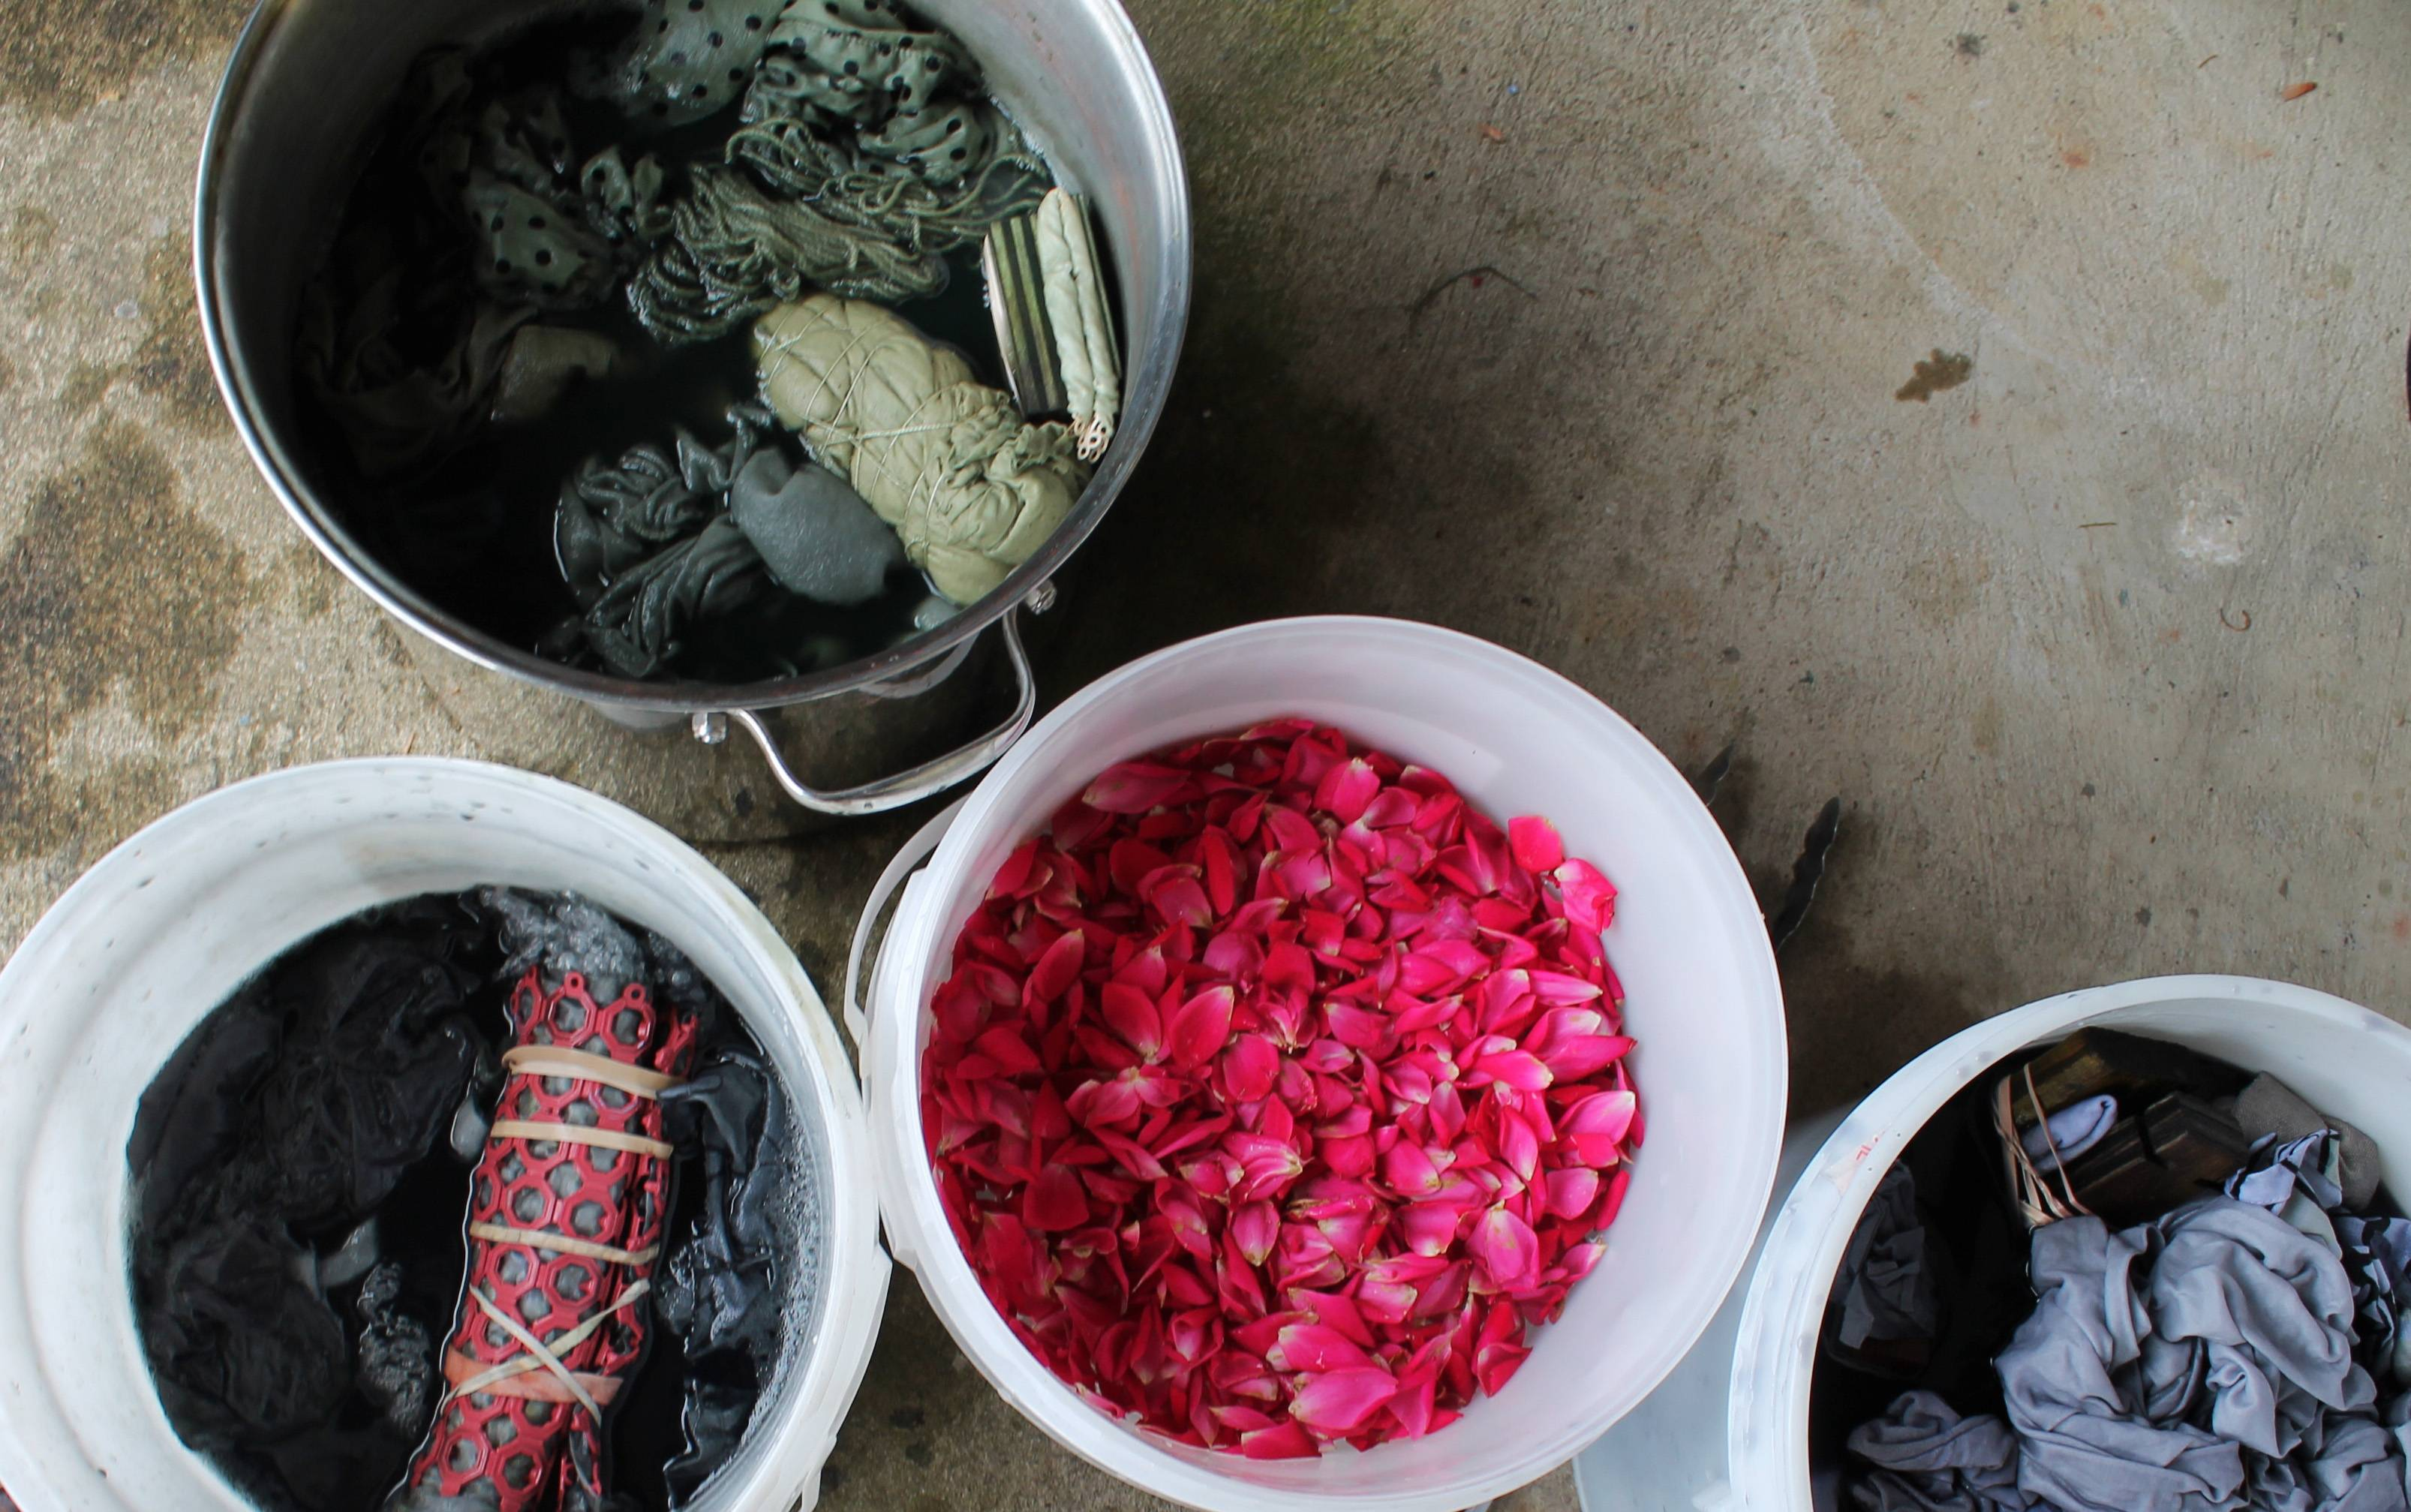 A natural dye bath, top left, can be made from pomegranate rinds, and natural dyes, bottom, made from rose petals and iron.